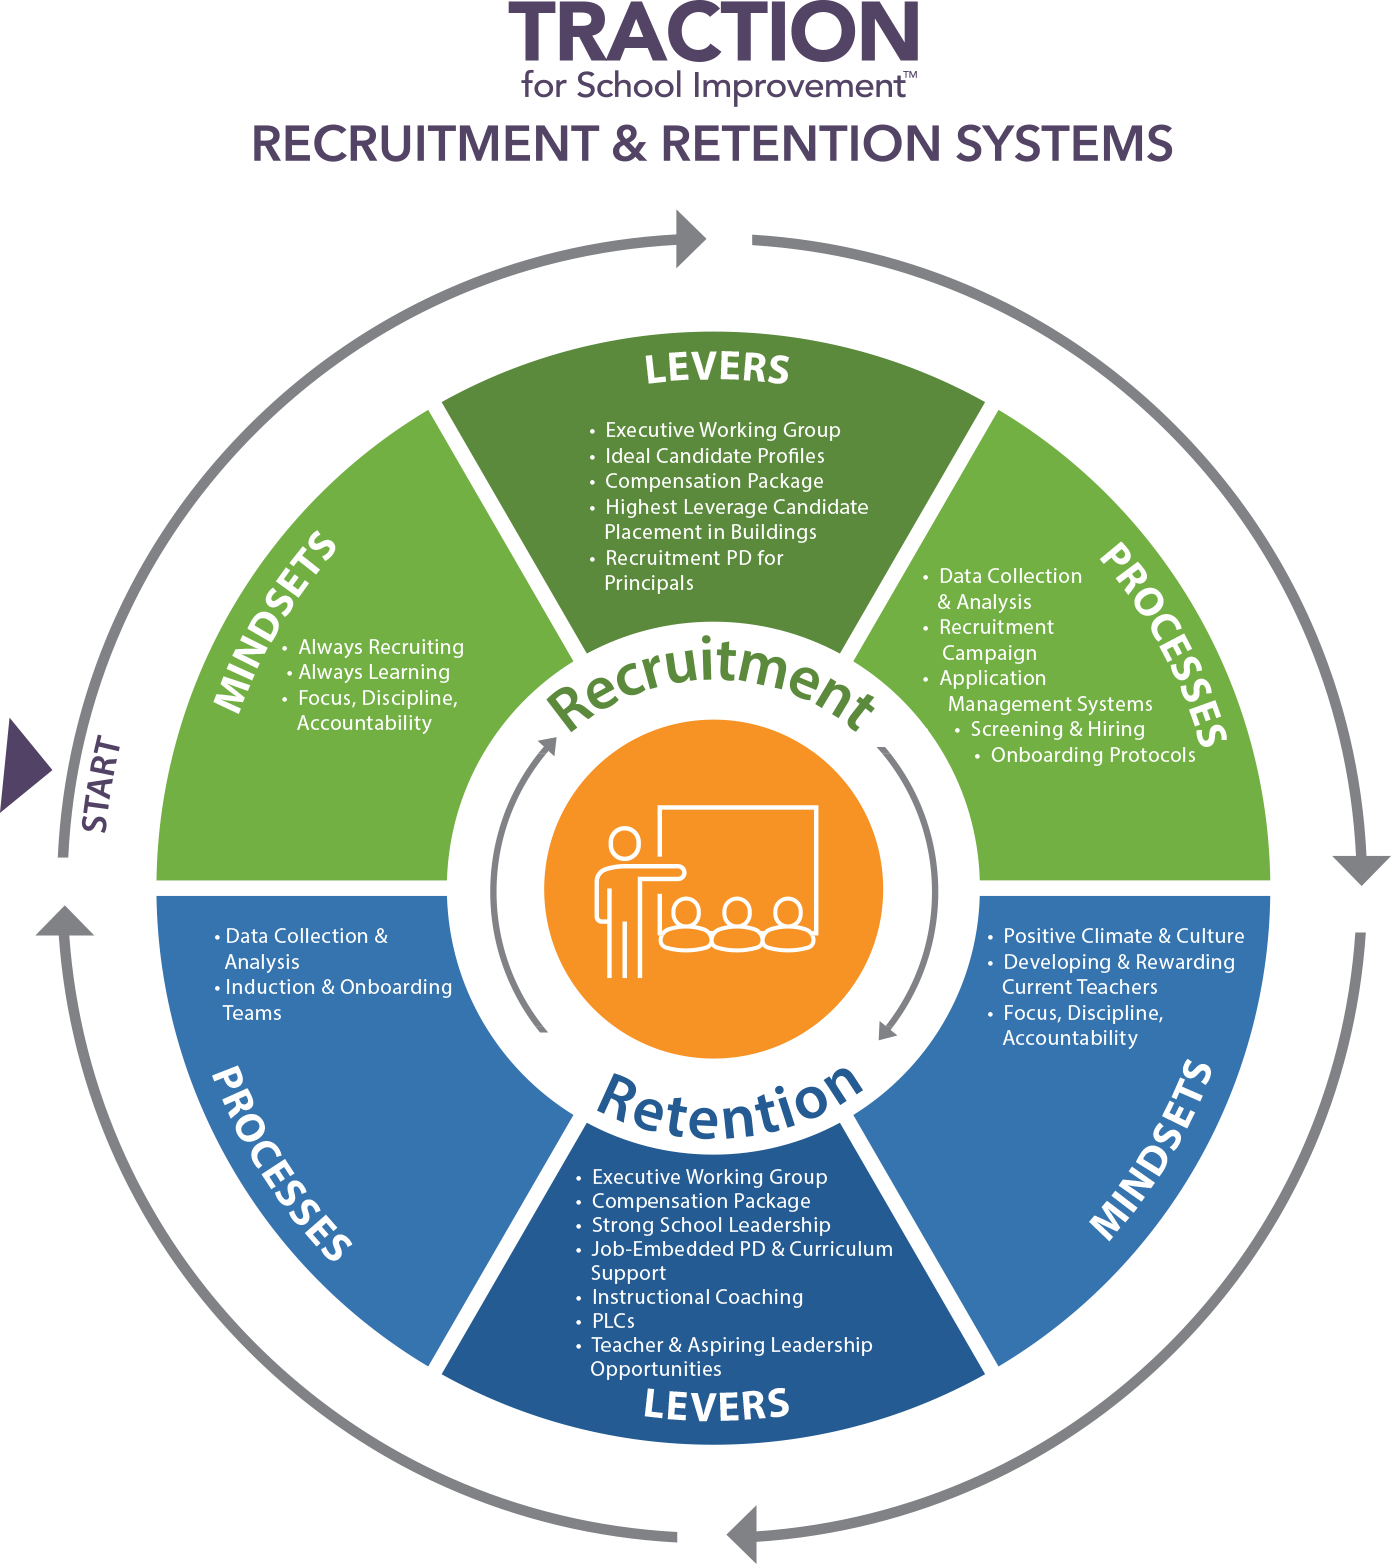 Teacher Recruitment and Retention Systems